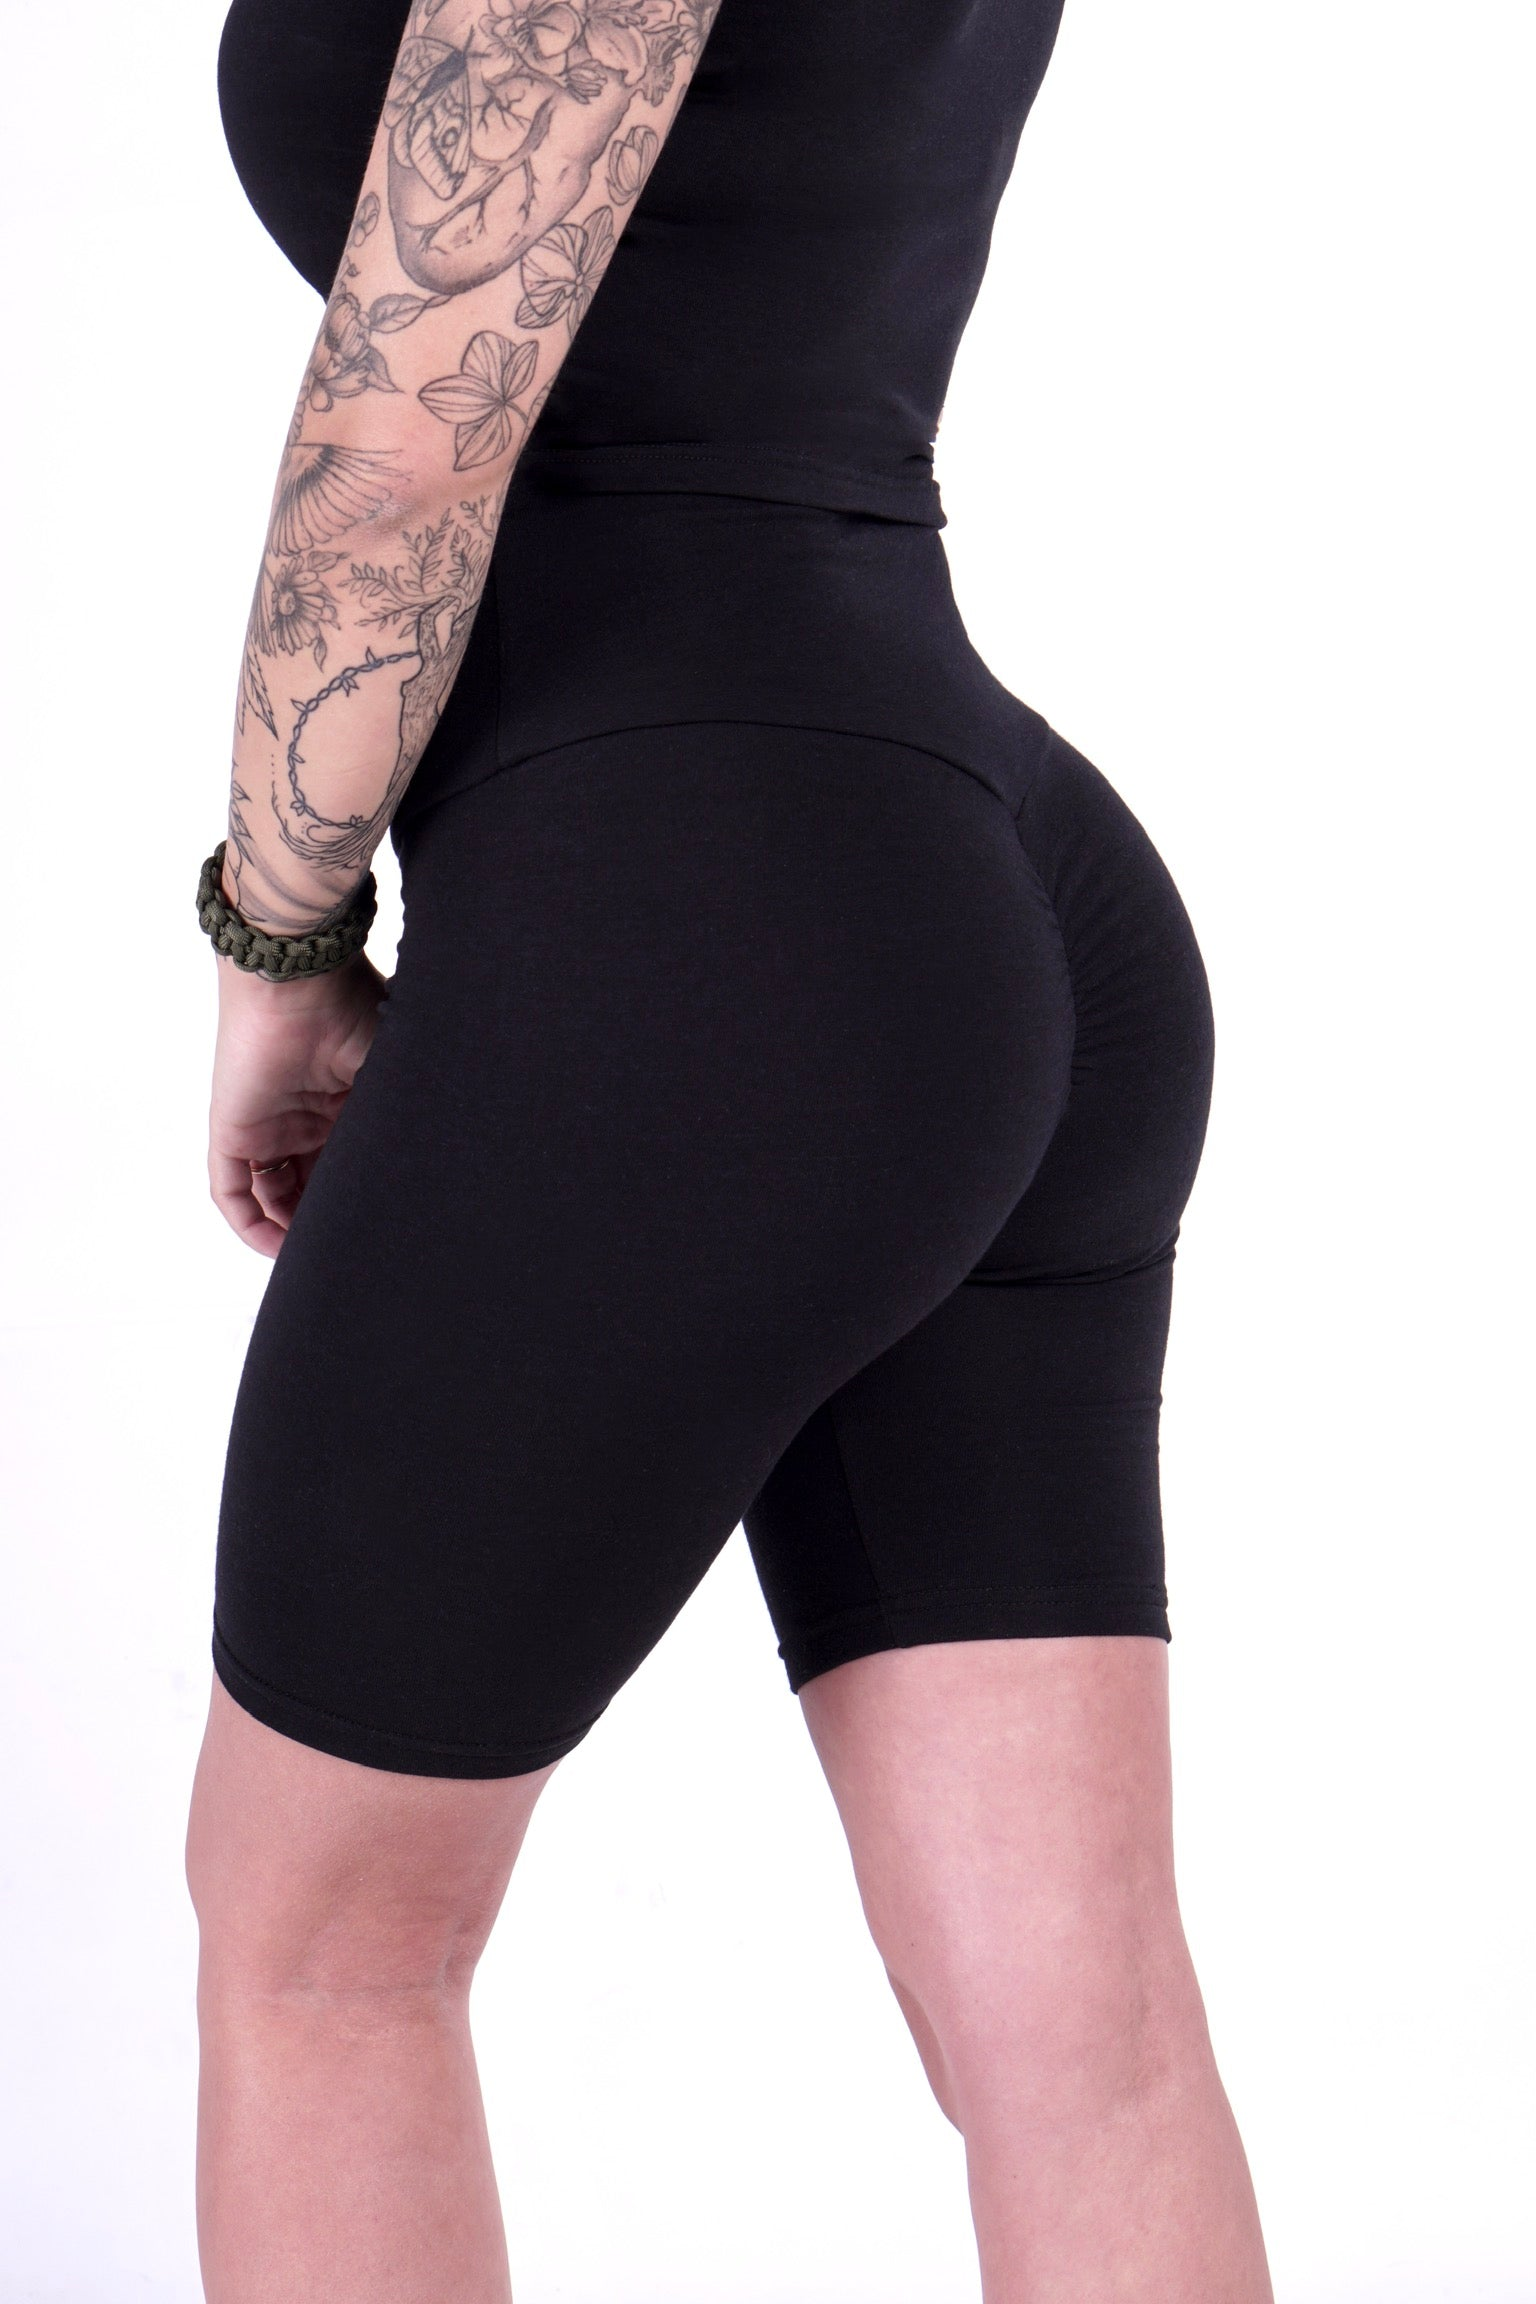 Eco-friendly bike short Scrunch-Butt Leggings black squat proof small medium large black made in canada montreal sustainable short ethical clothes short écologique fait des belle fesses short taille haute opaque écologique vêtement de tous les jours